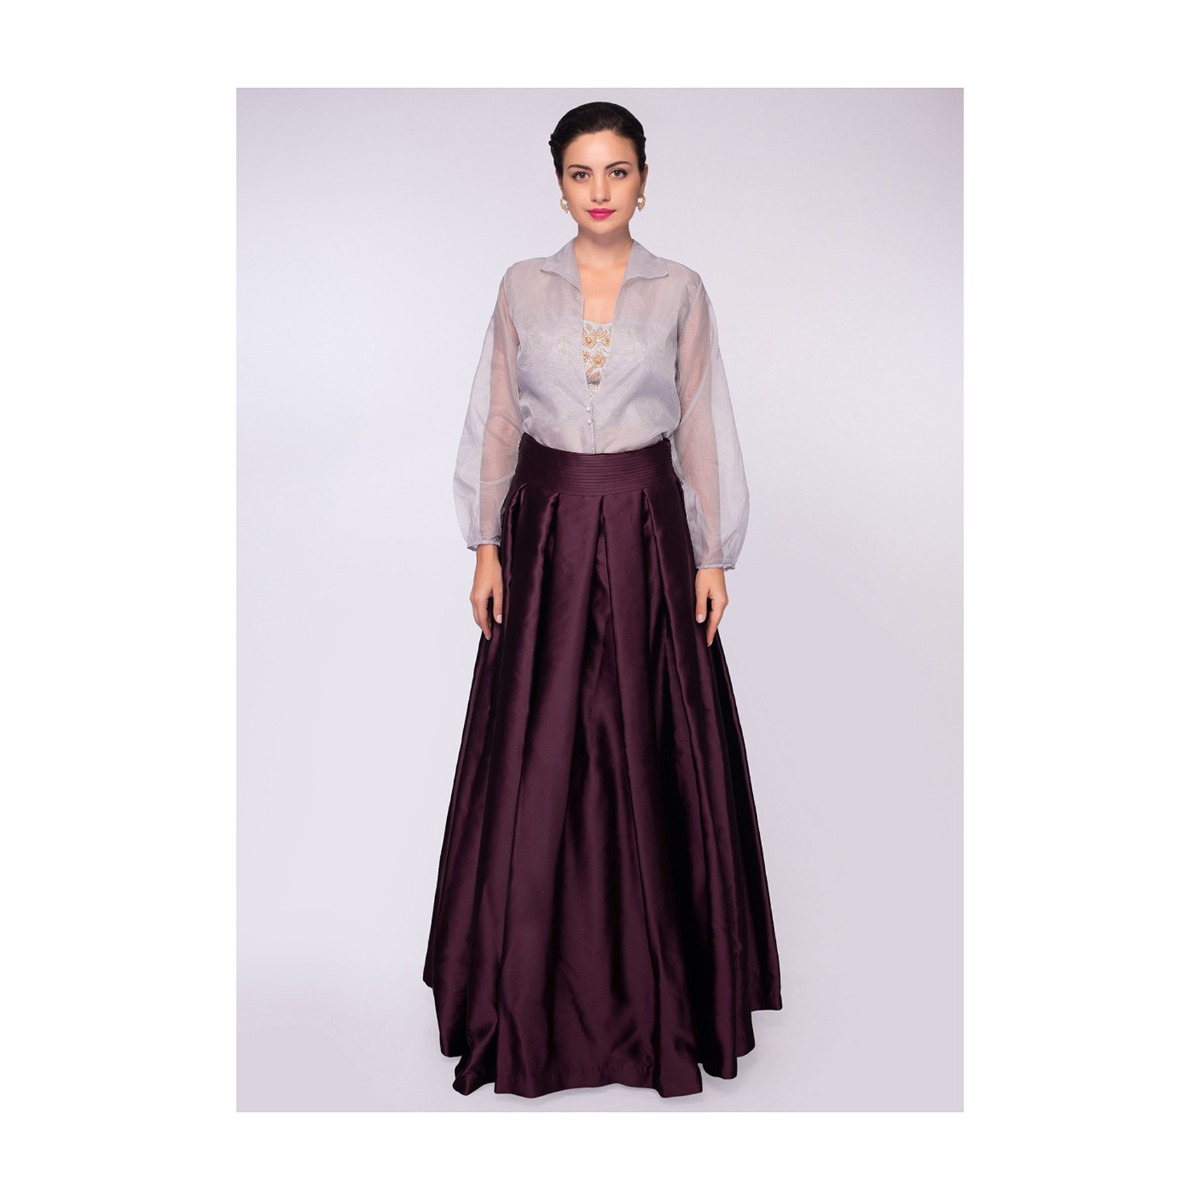 b4734d9a21d78 Burgundy satin crepe skirt paired with strapless satin crop top and grey  organza jacket only on KalkiMore Detail. Sold Out